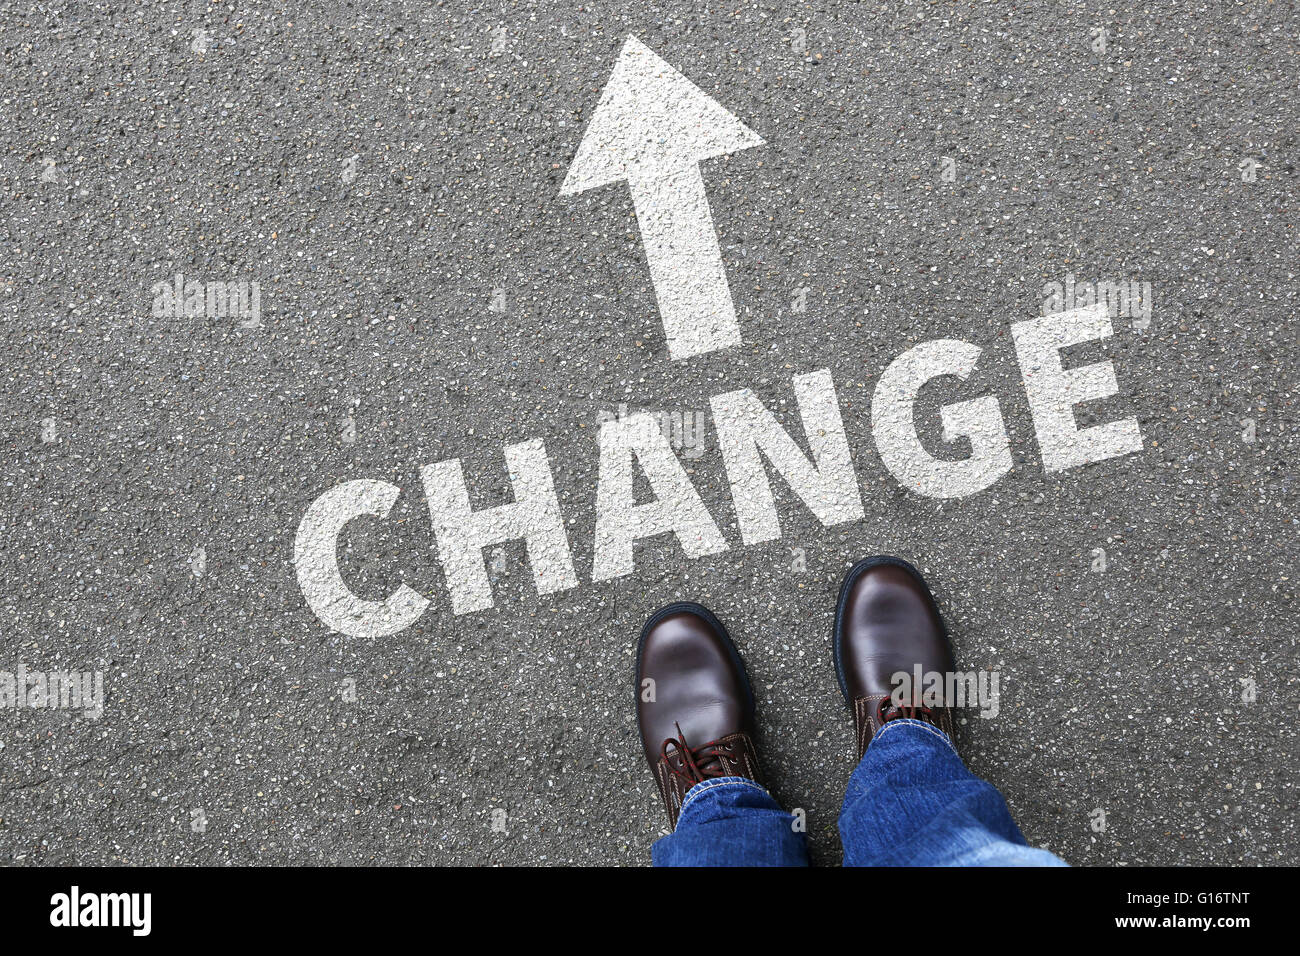 Change changing work job life changes concept vision - Stock Image